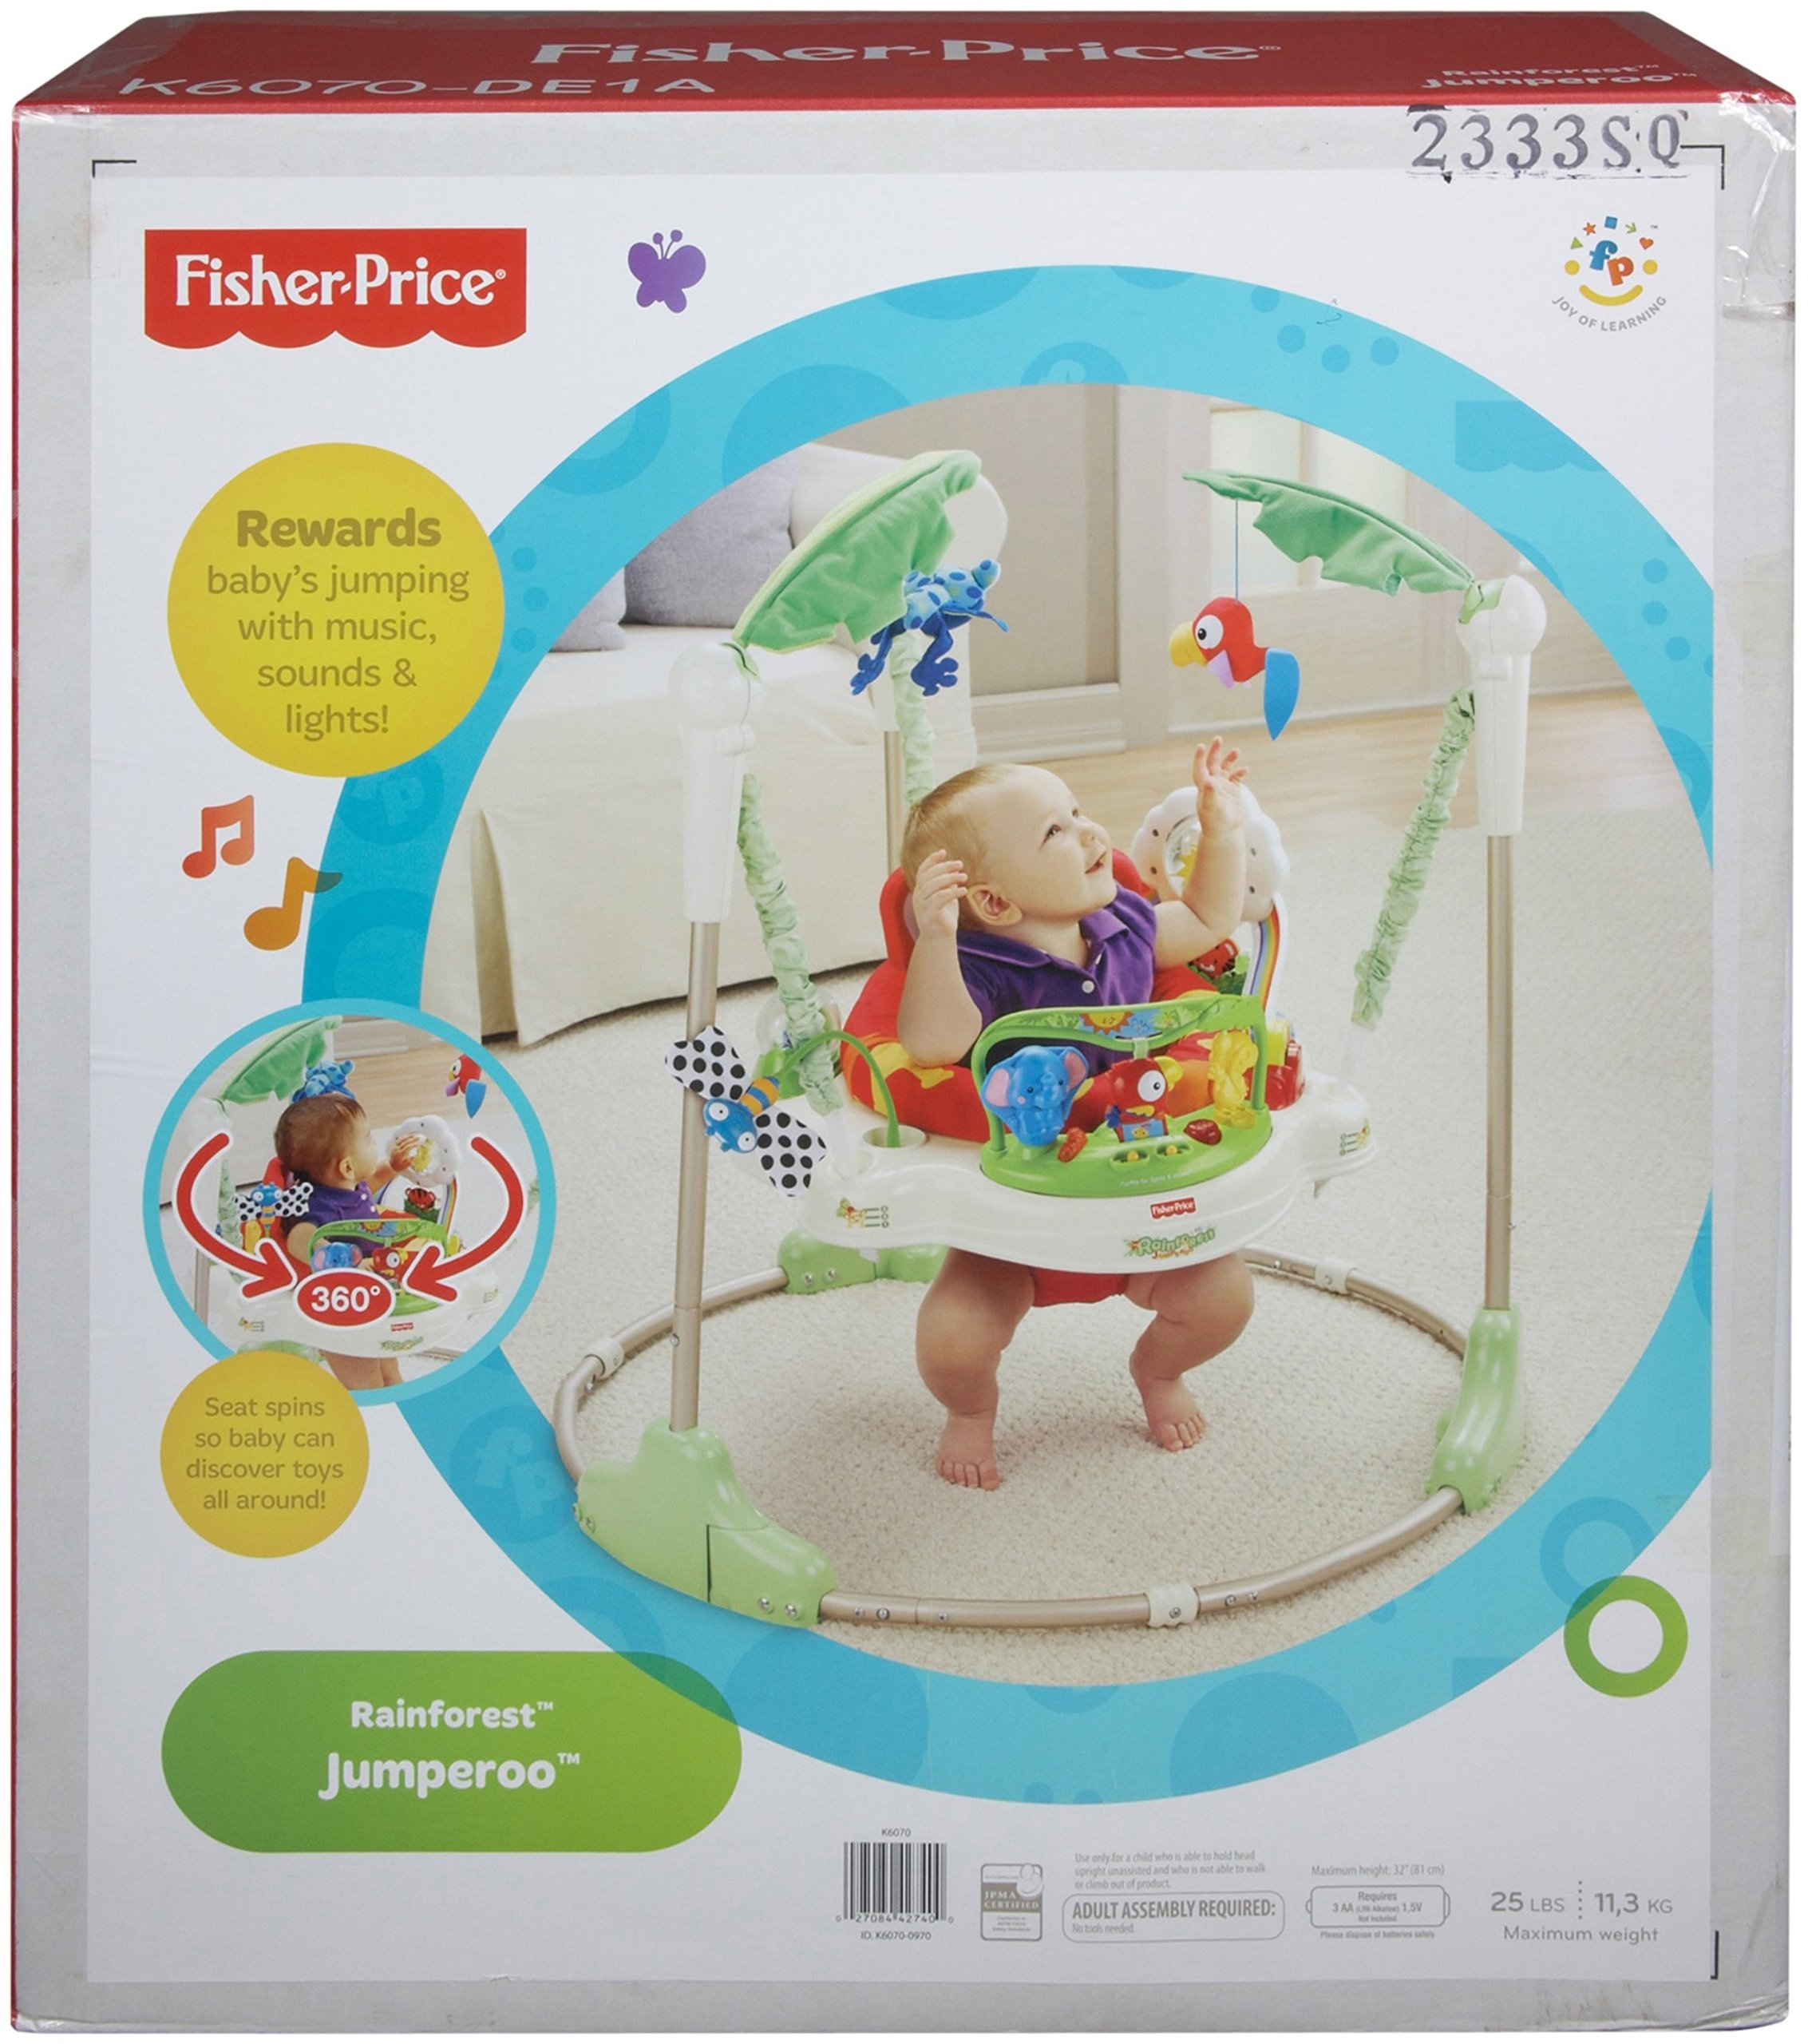 Fisher-Price Rainforest Jumperoo by Fisher-Price (Image #5)